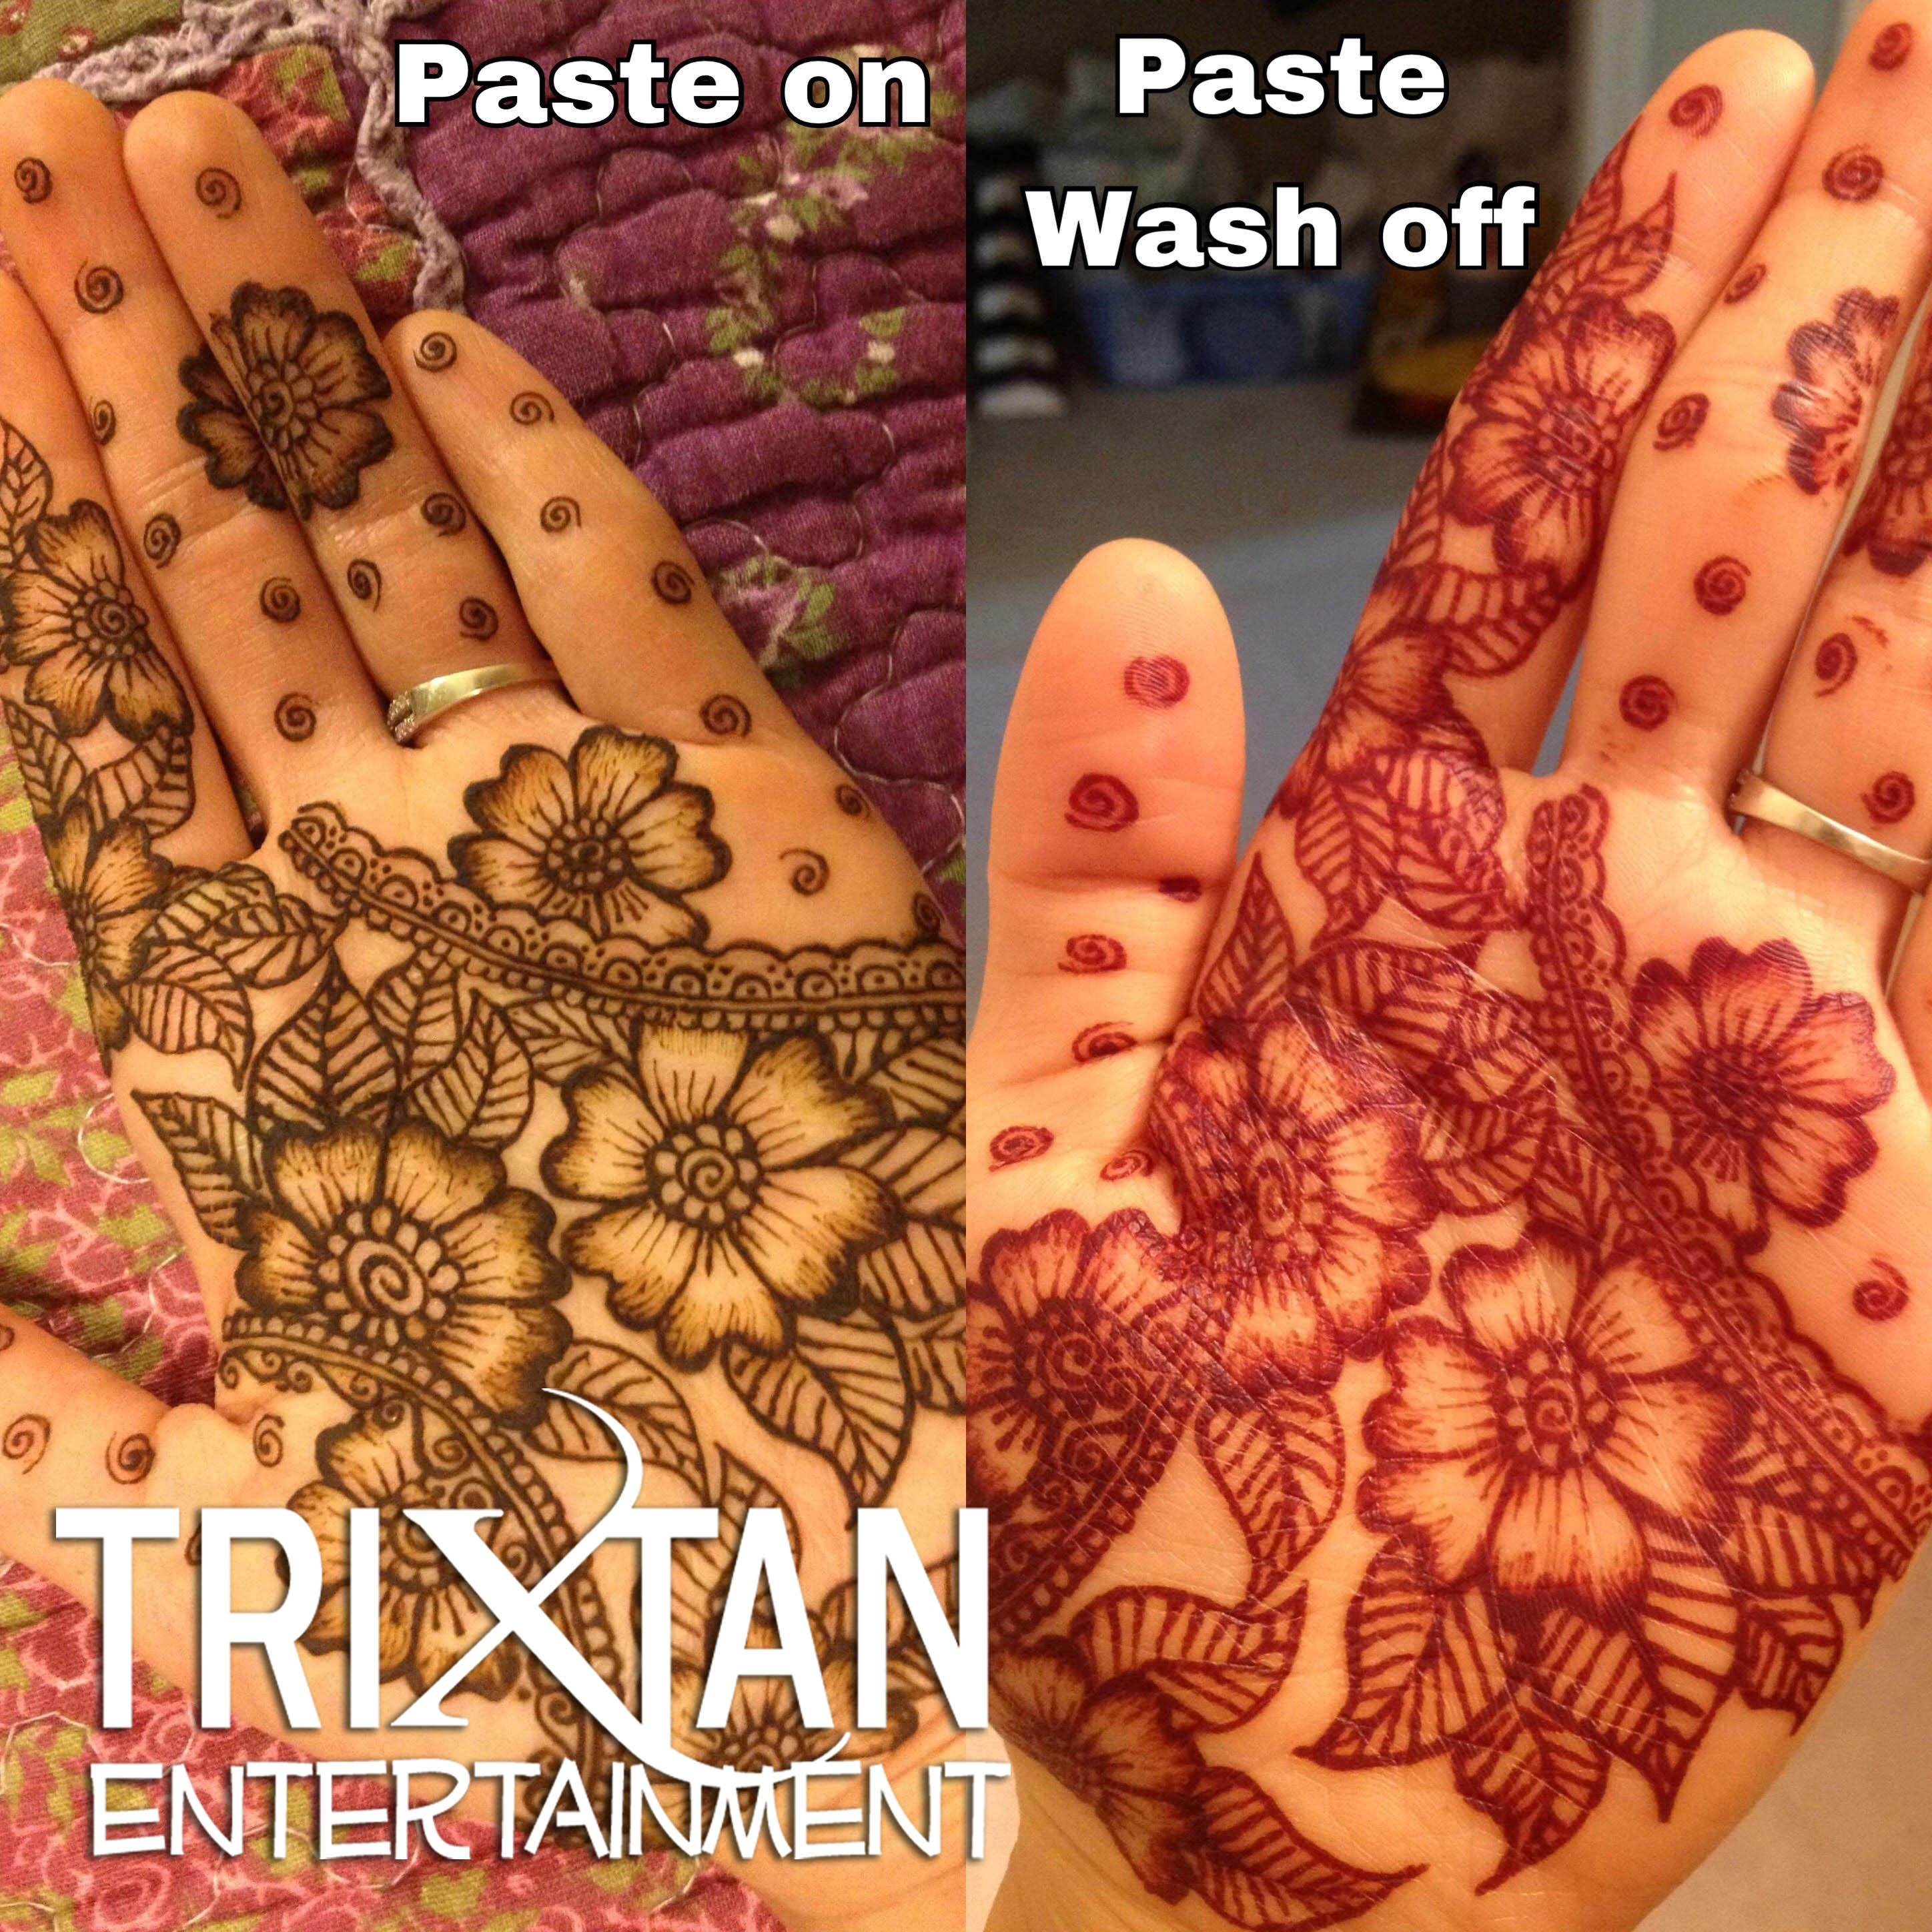 f9c2c7977 Henna tattoo of Flowers on a Hand - TriXtan Entertainment inc.